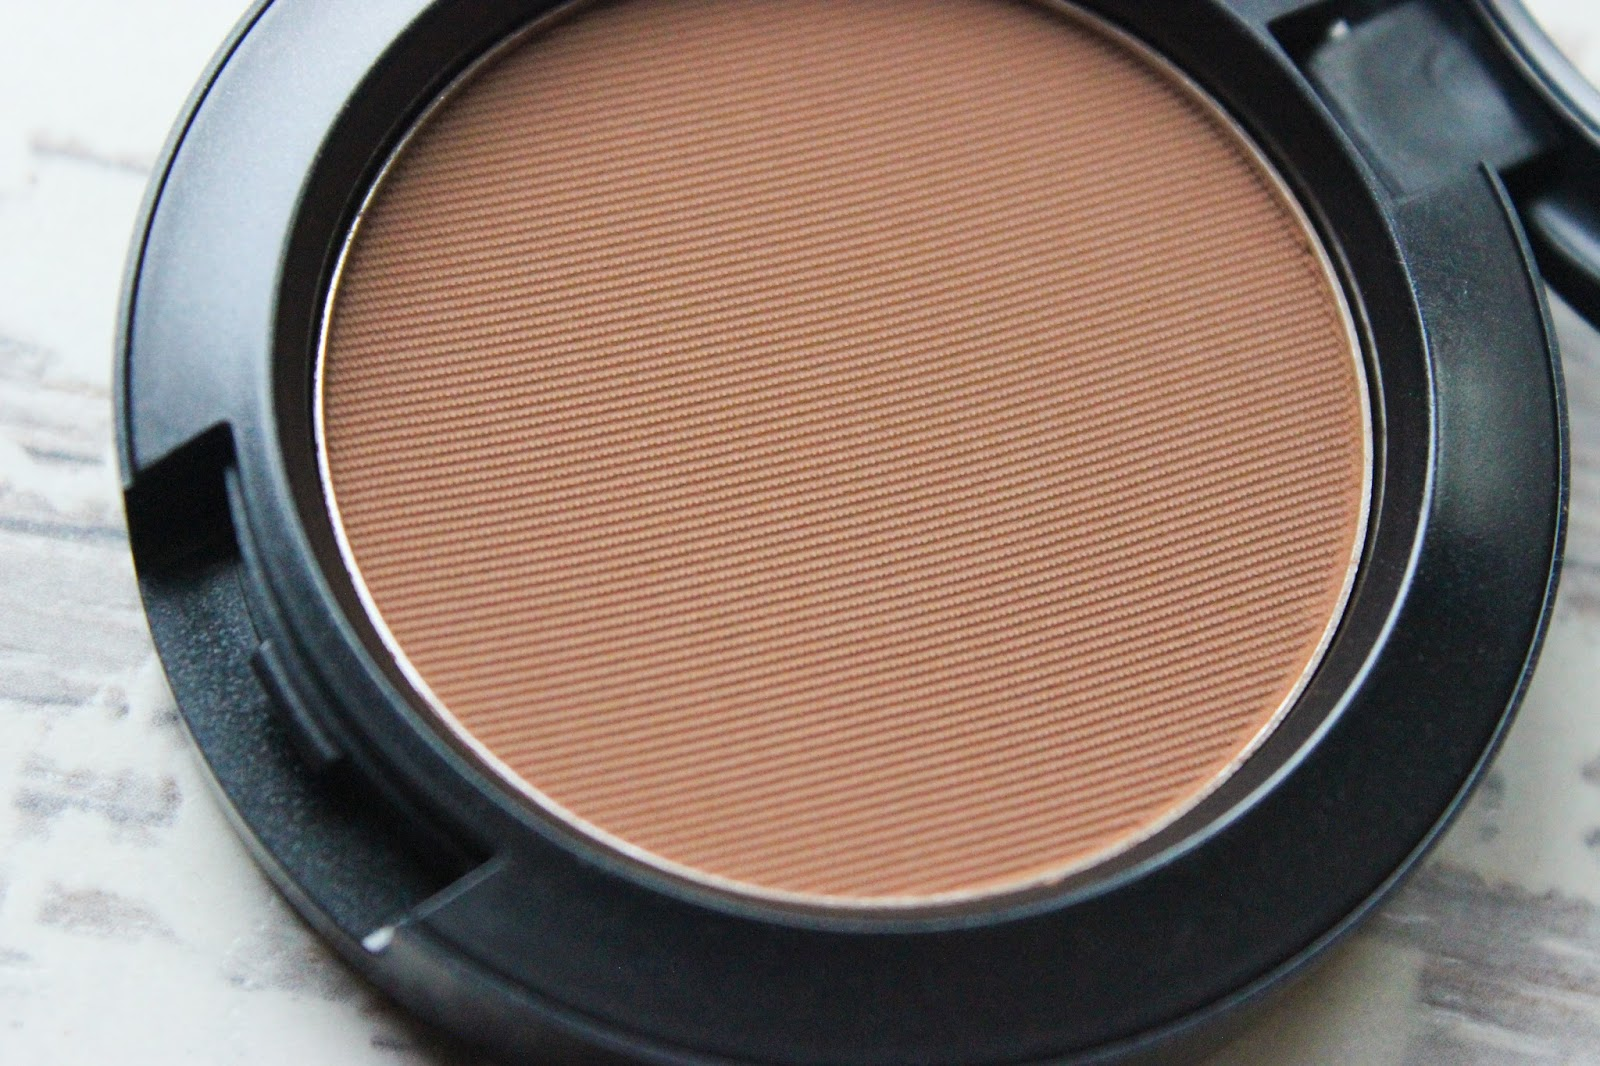 MAC Cosmetics Blunt Blush Dark Skin WoC Discoveries Of Self Blog NatalieKayO Review UK